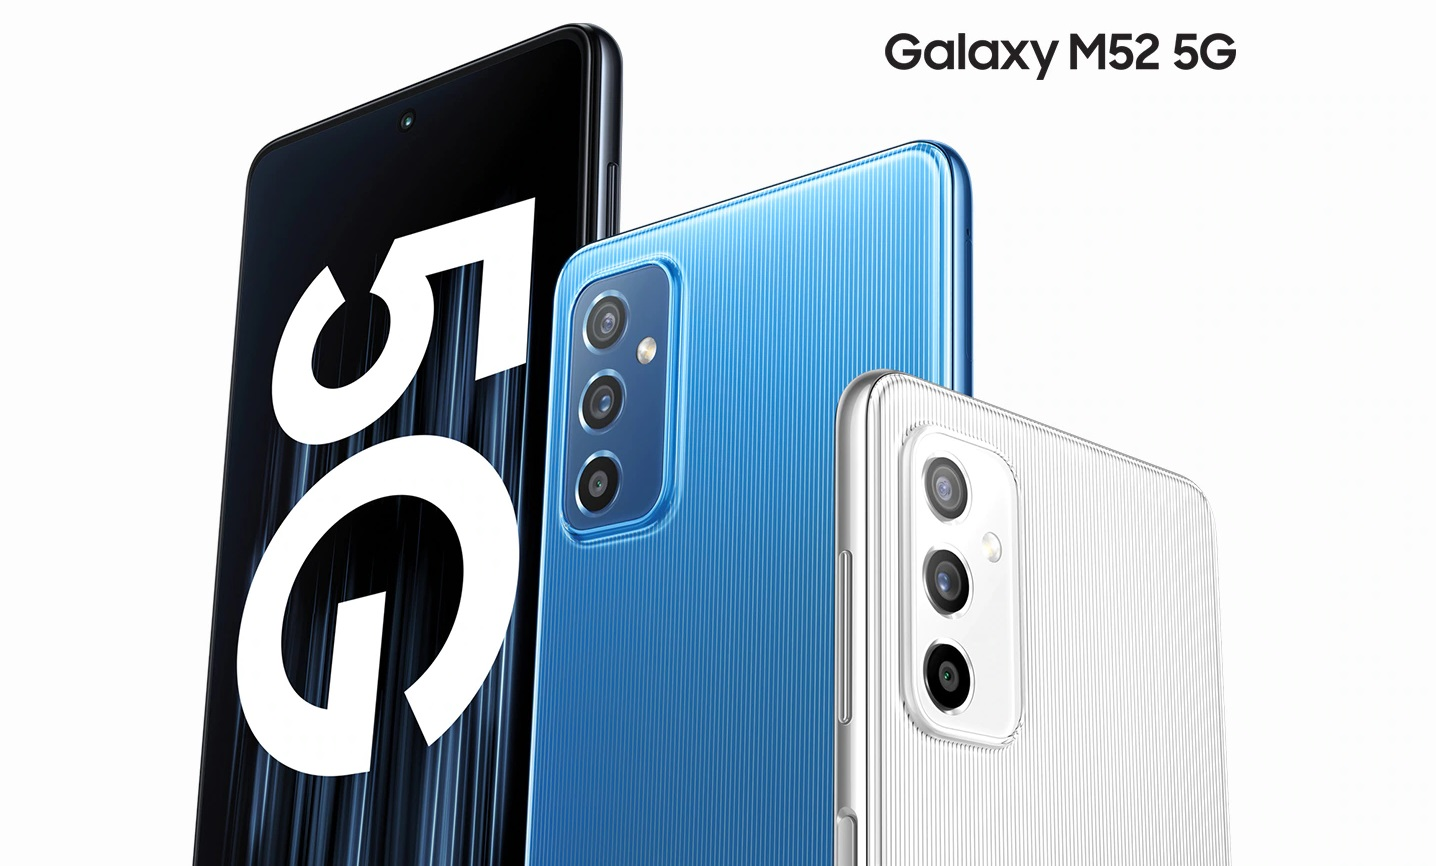 Galaxy M52 5G is official in Europe, doesn't have a 3.5mm port - SamMobile